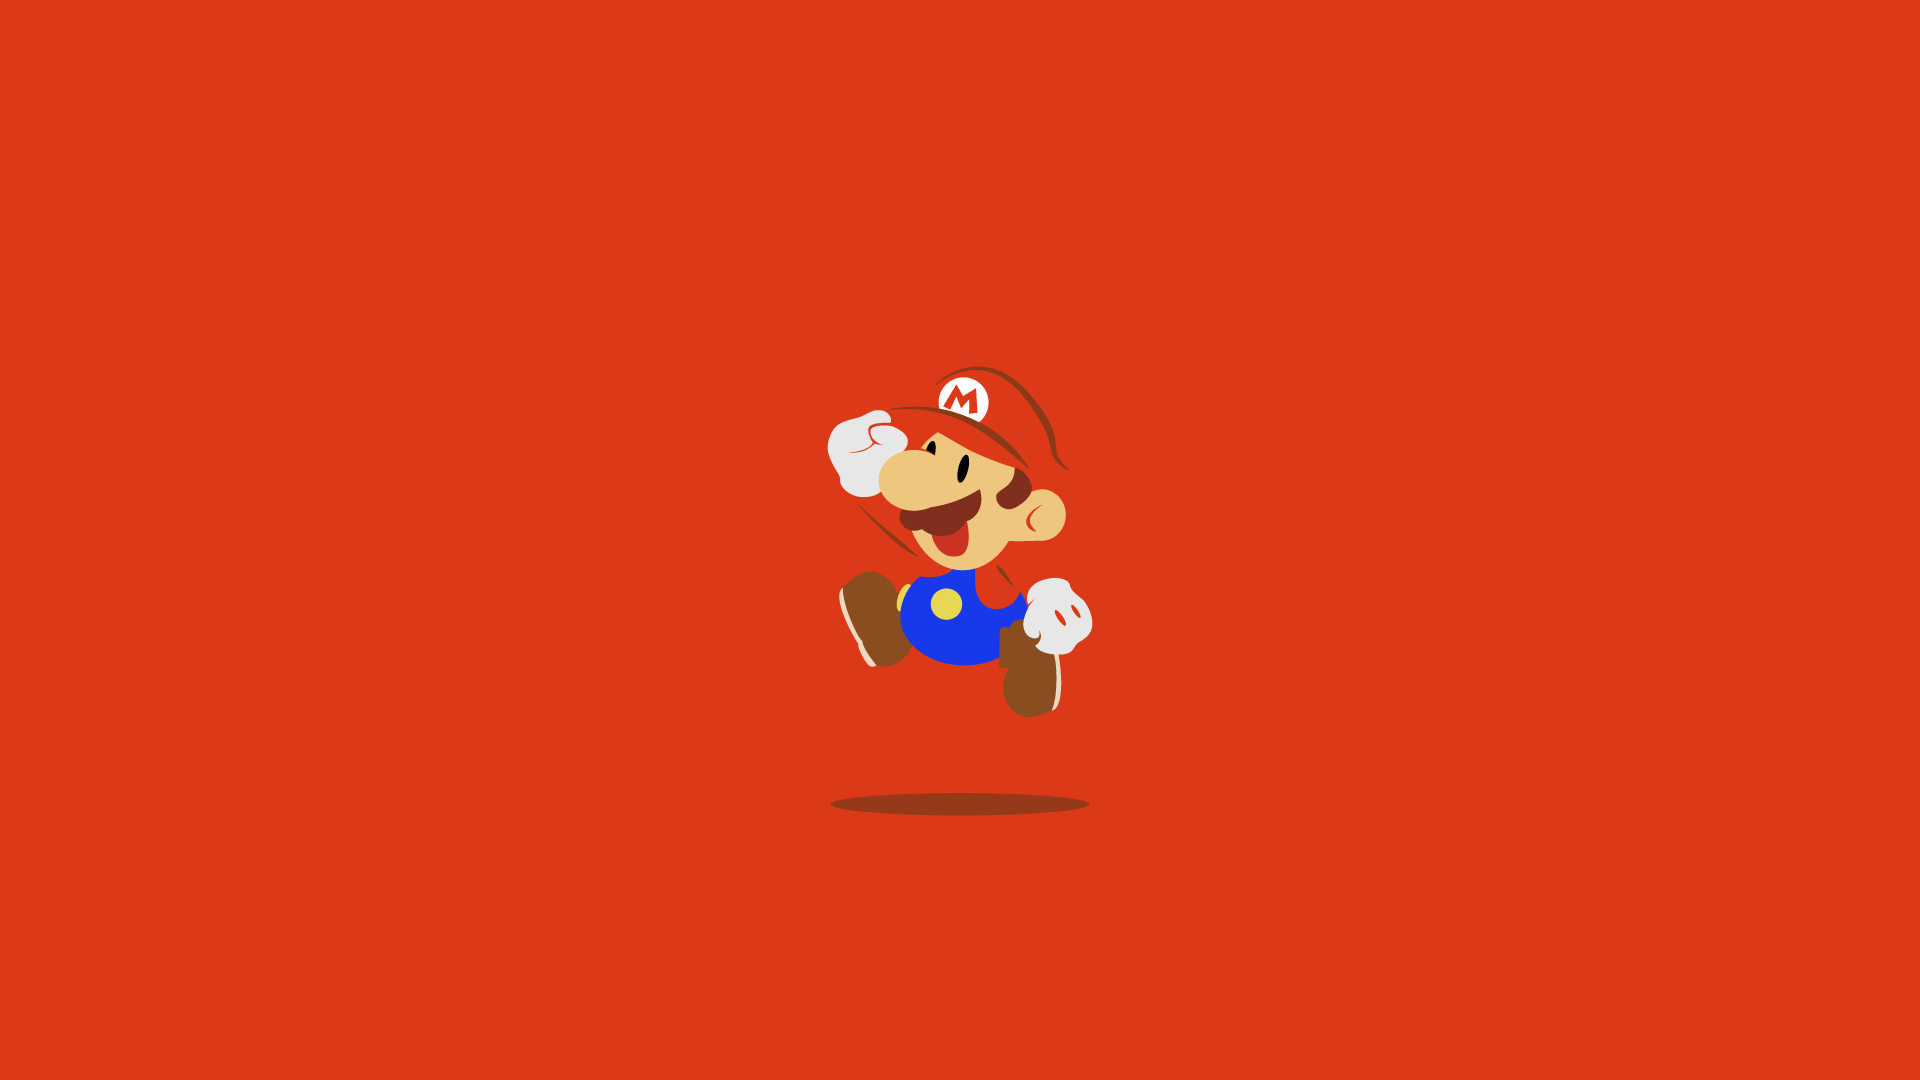 cool mario pictures